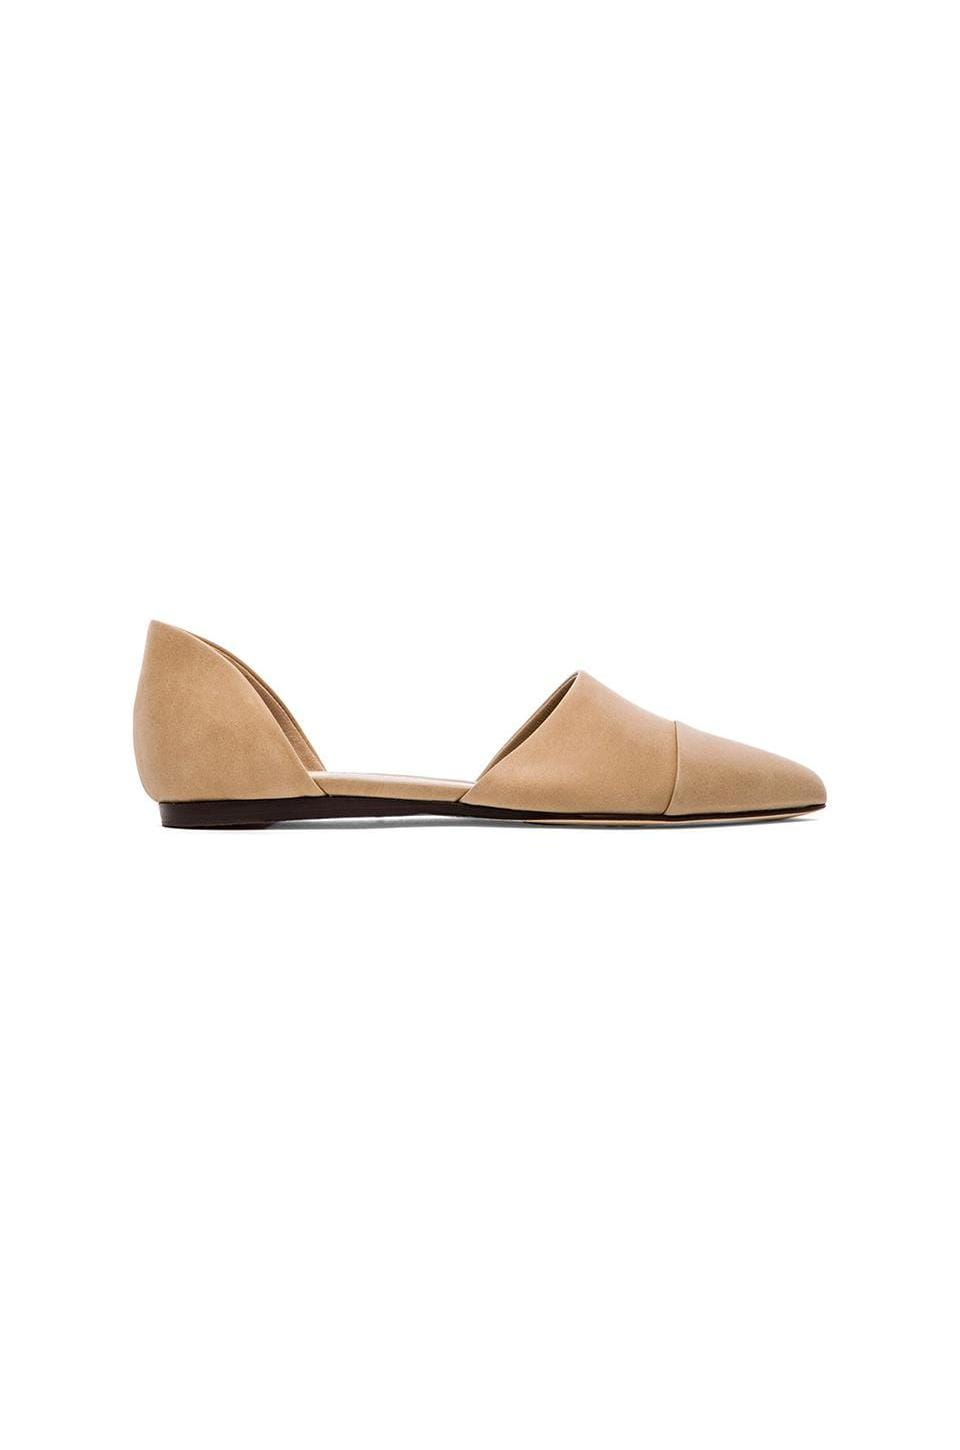 Jenni Kayne D'Orsay Flat in Natural